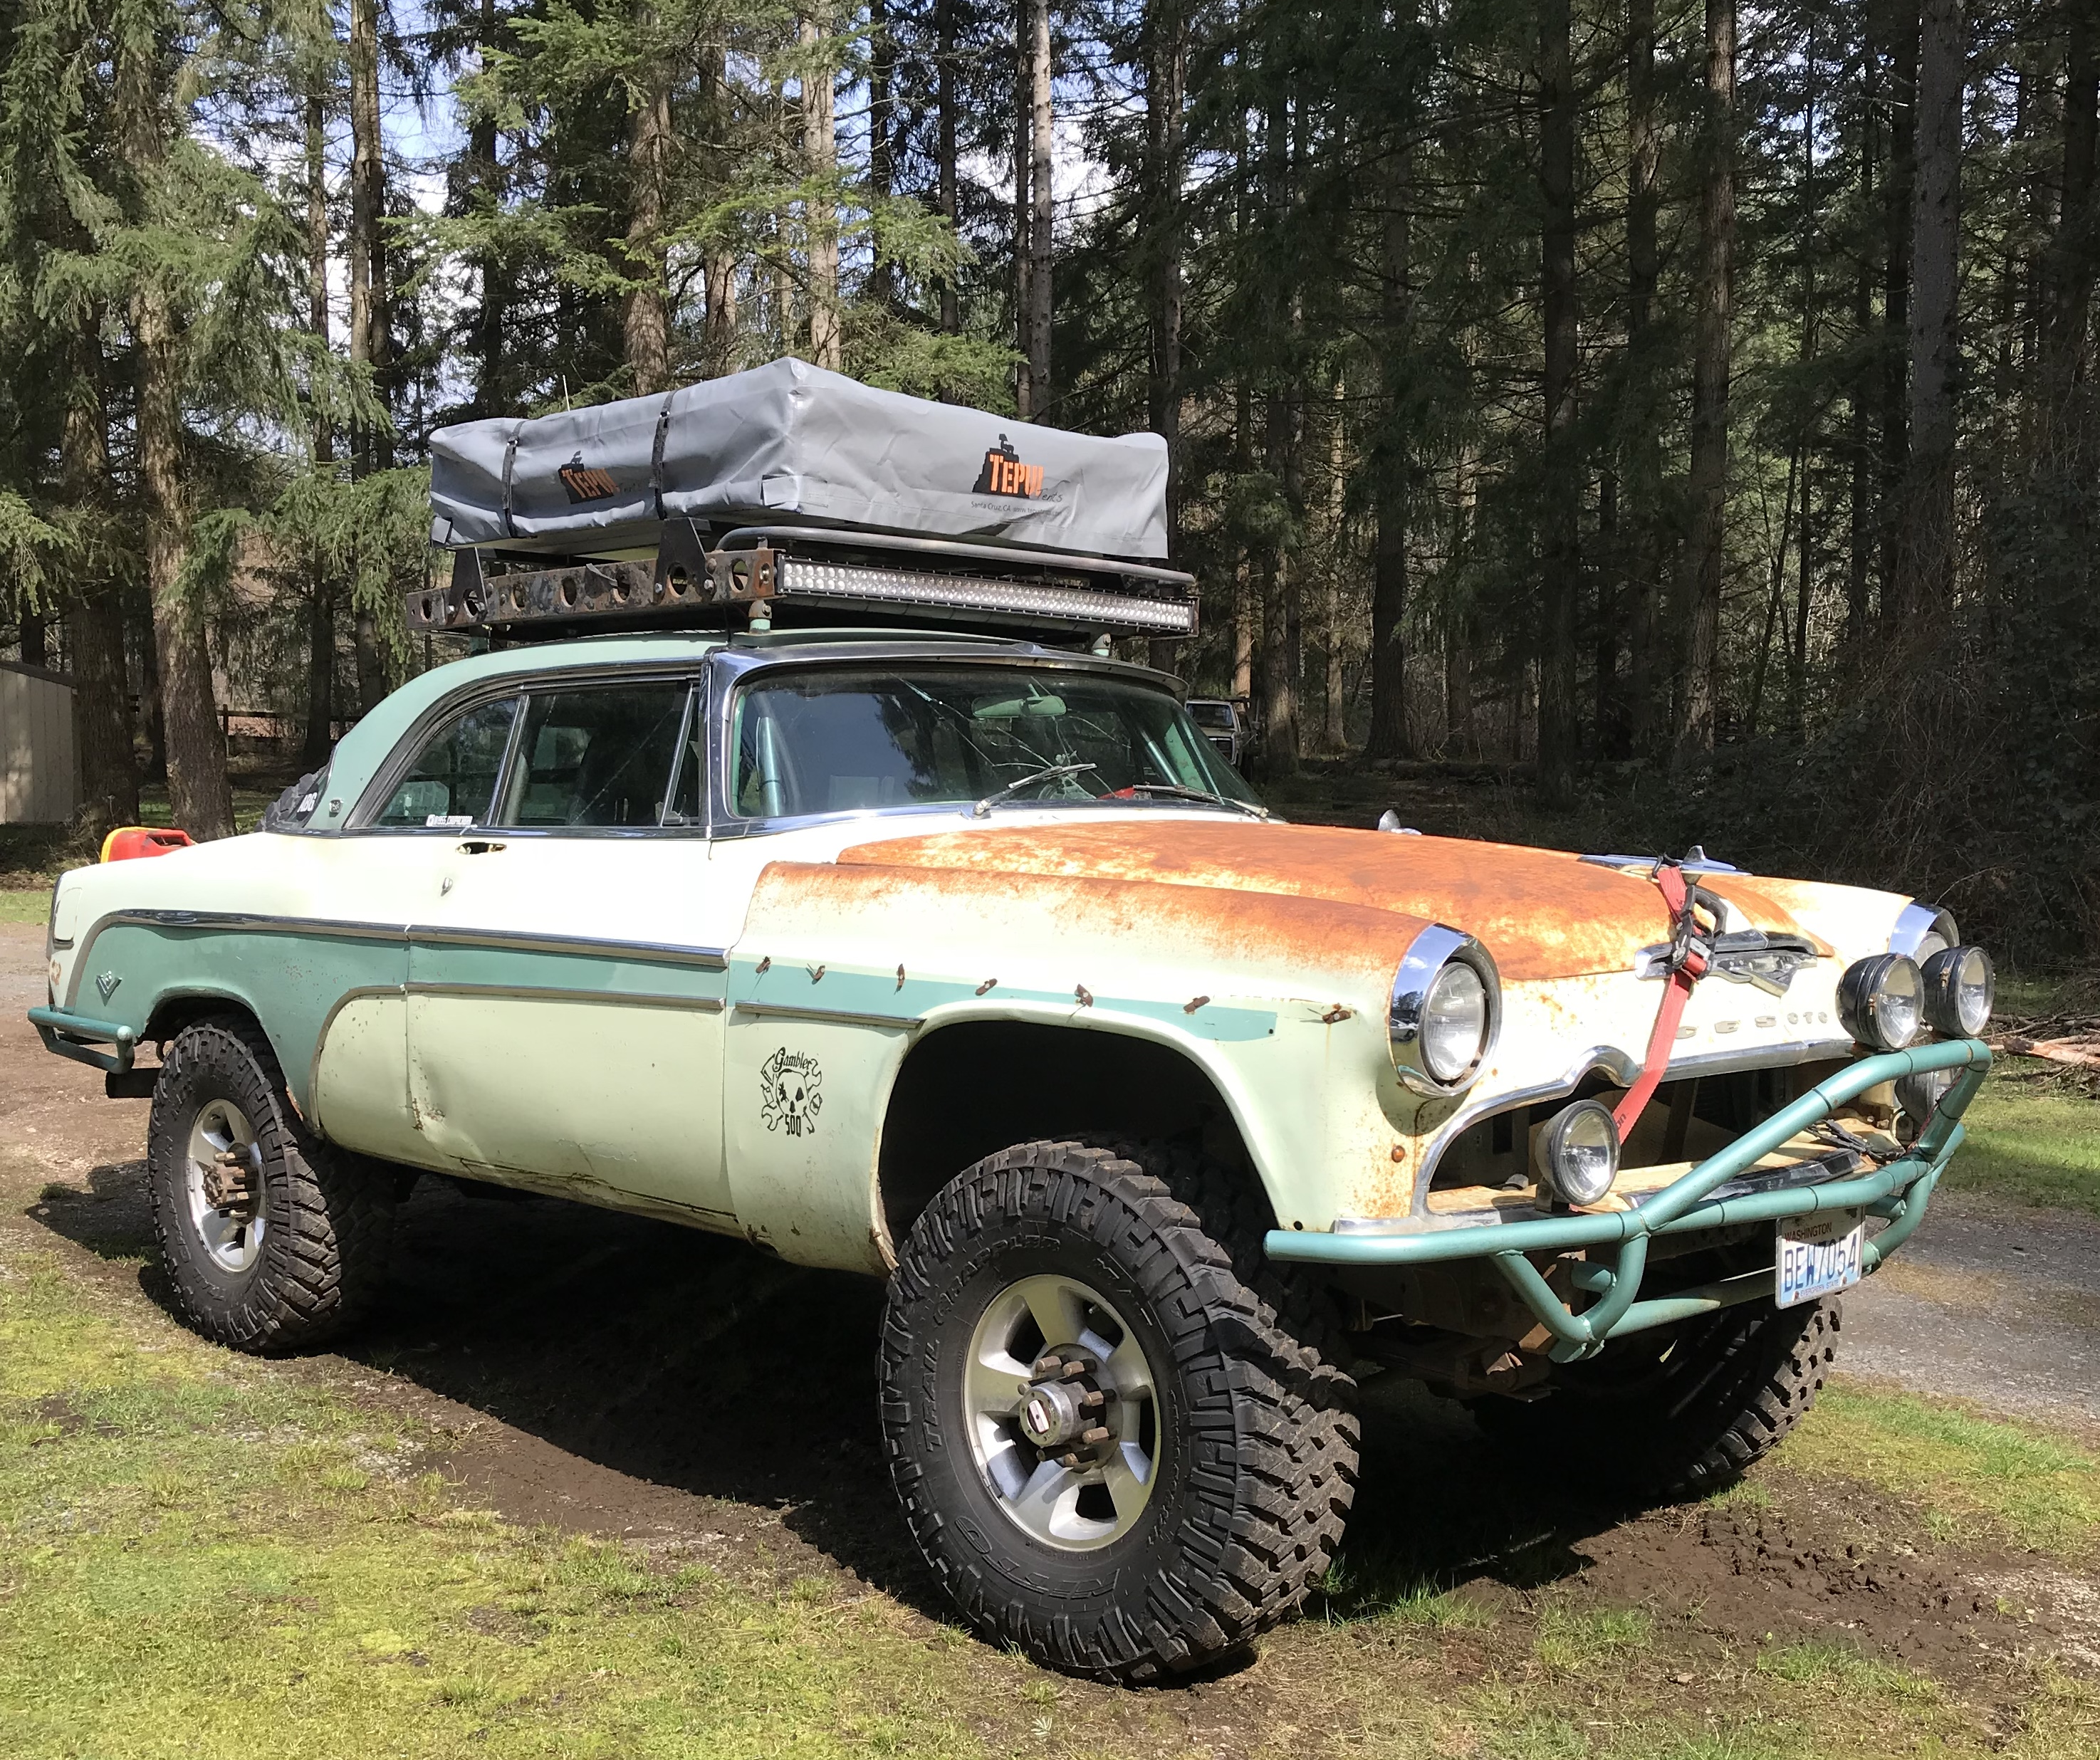 Meet Chupacabra, A 1955 Desoto Fireflite That Is Off-Road Perfection. Wait, What?